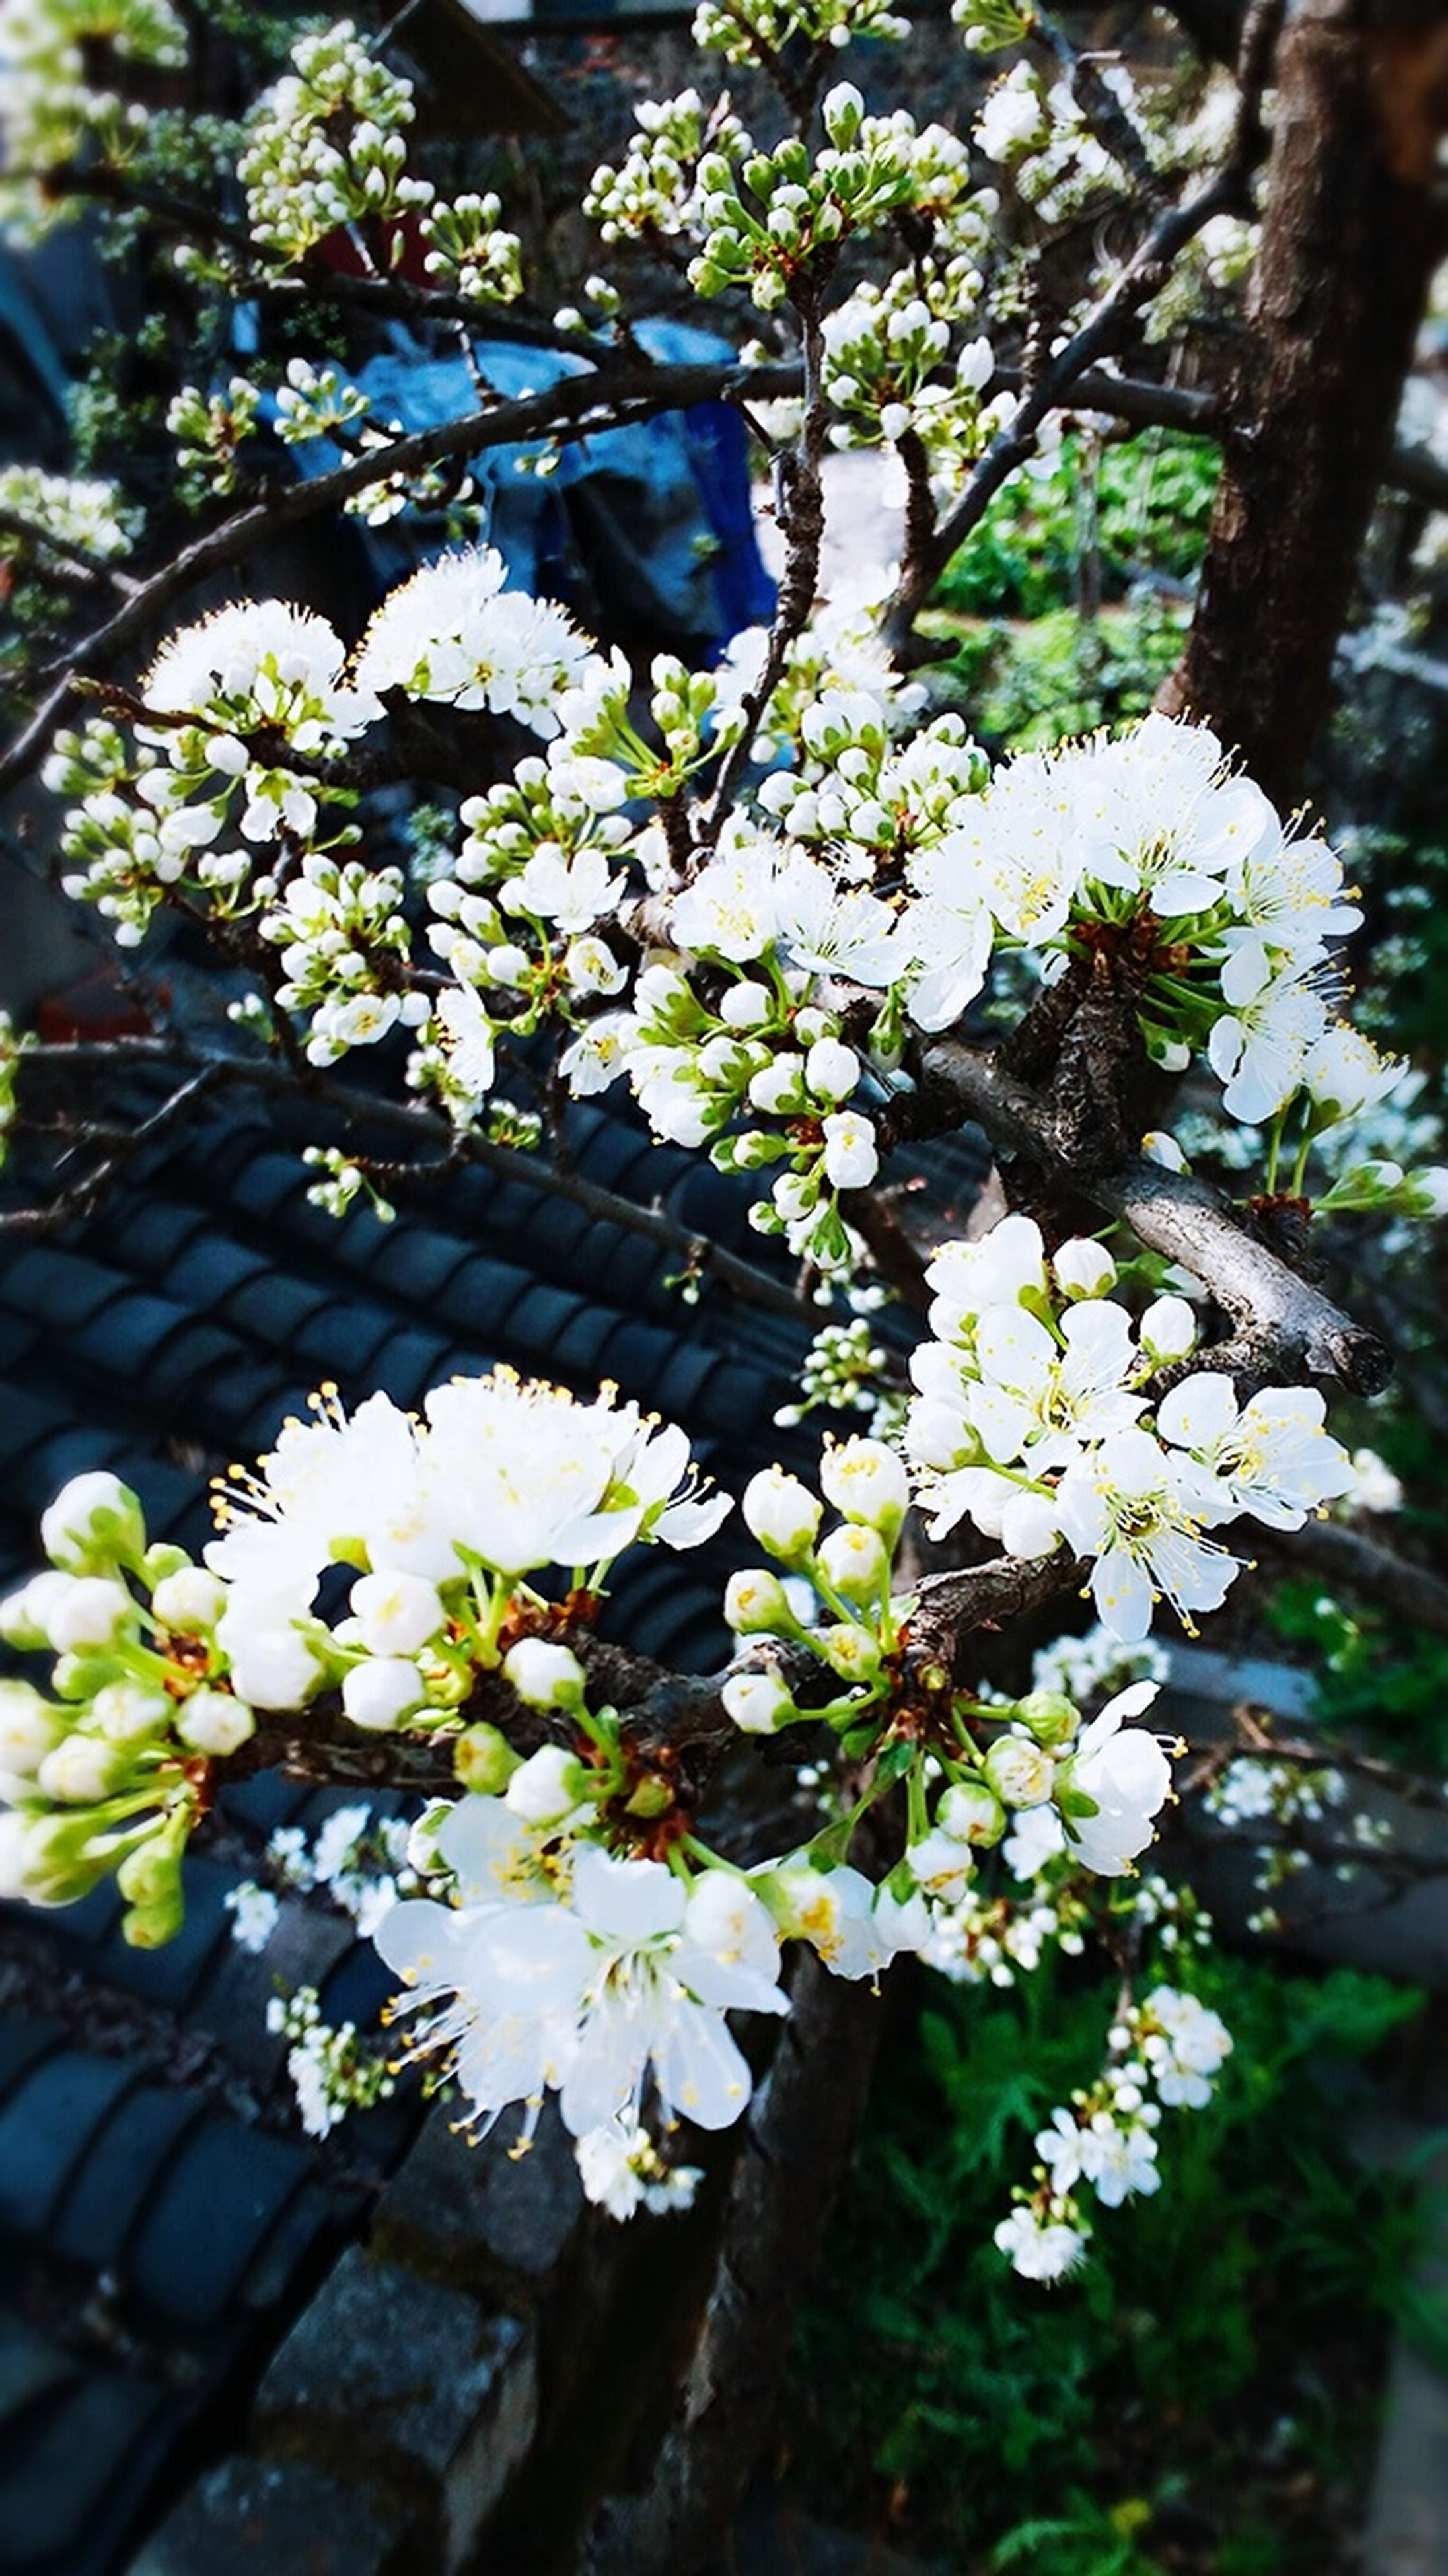 flower, freshness, growth, white color, fragility, petal, beauty in nature, tree, blooming, branch, nature, blossom, flower head, in bloom, focus on foreground, close-up, plant, leaf, cherry blossom, springtime